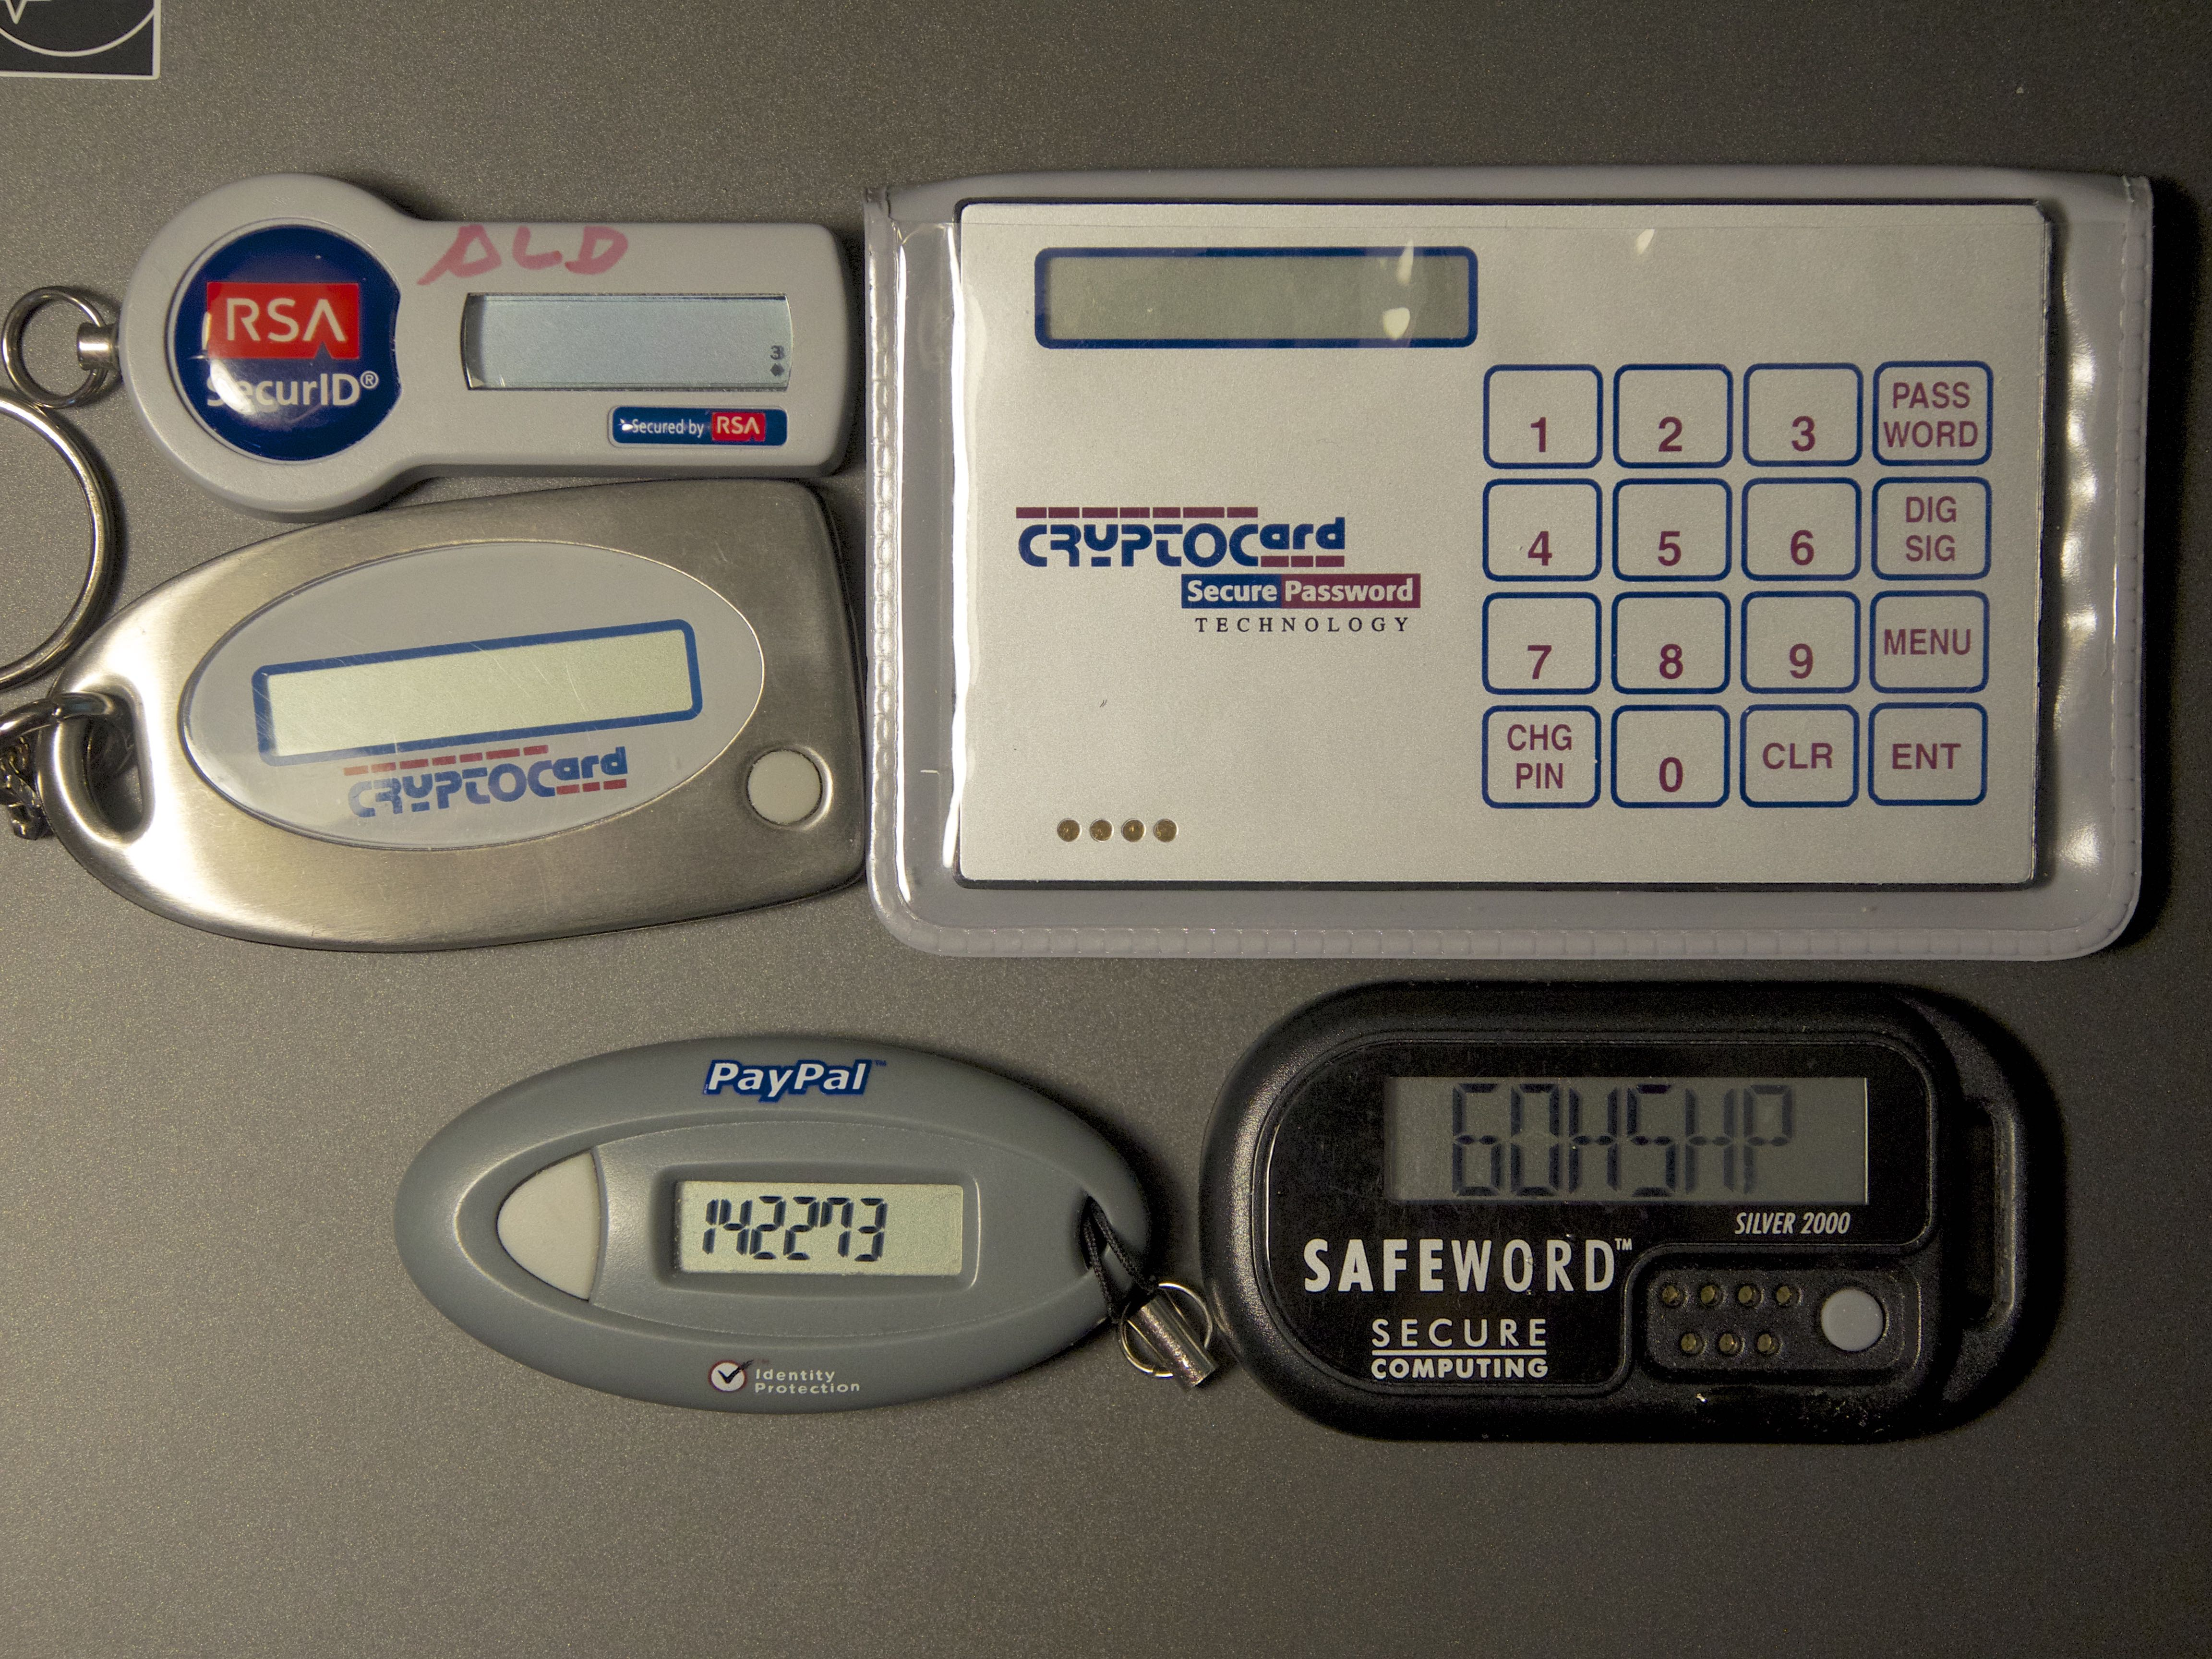 One-time-password tokens